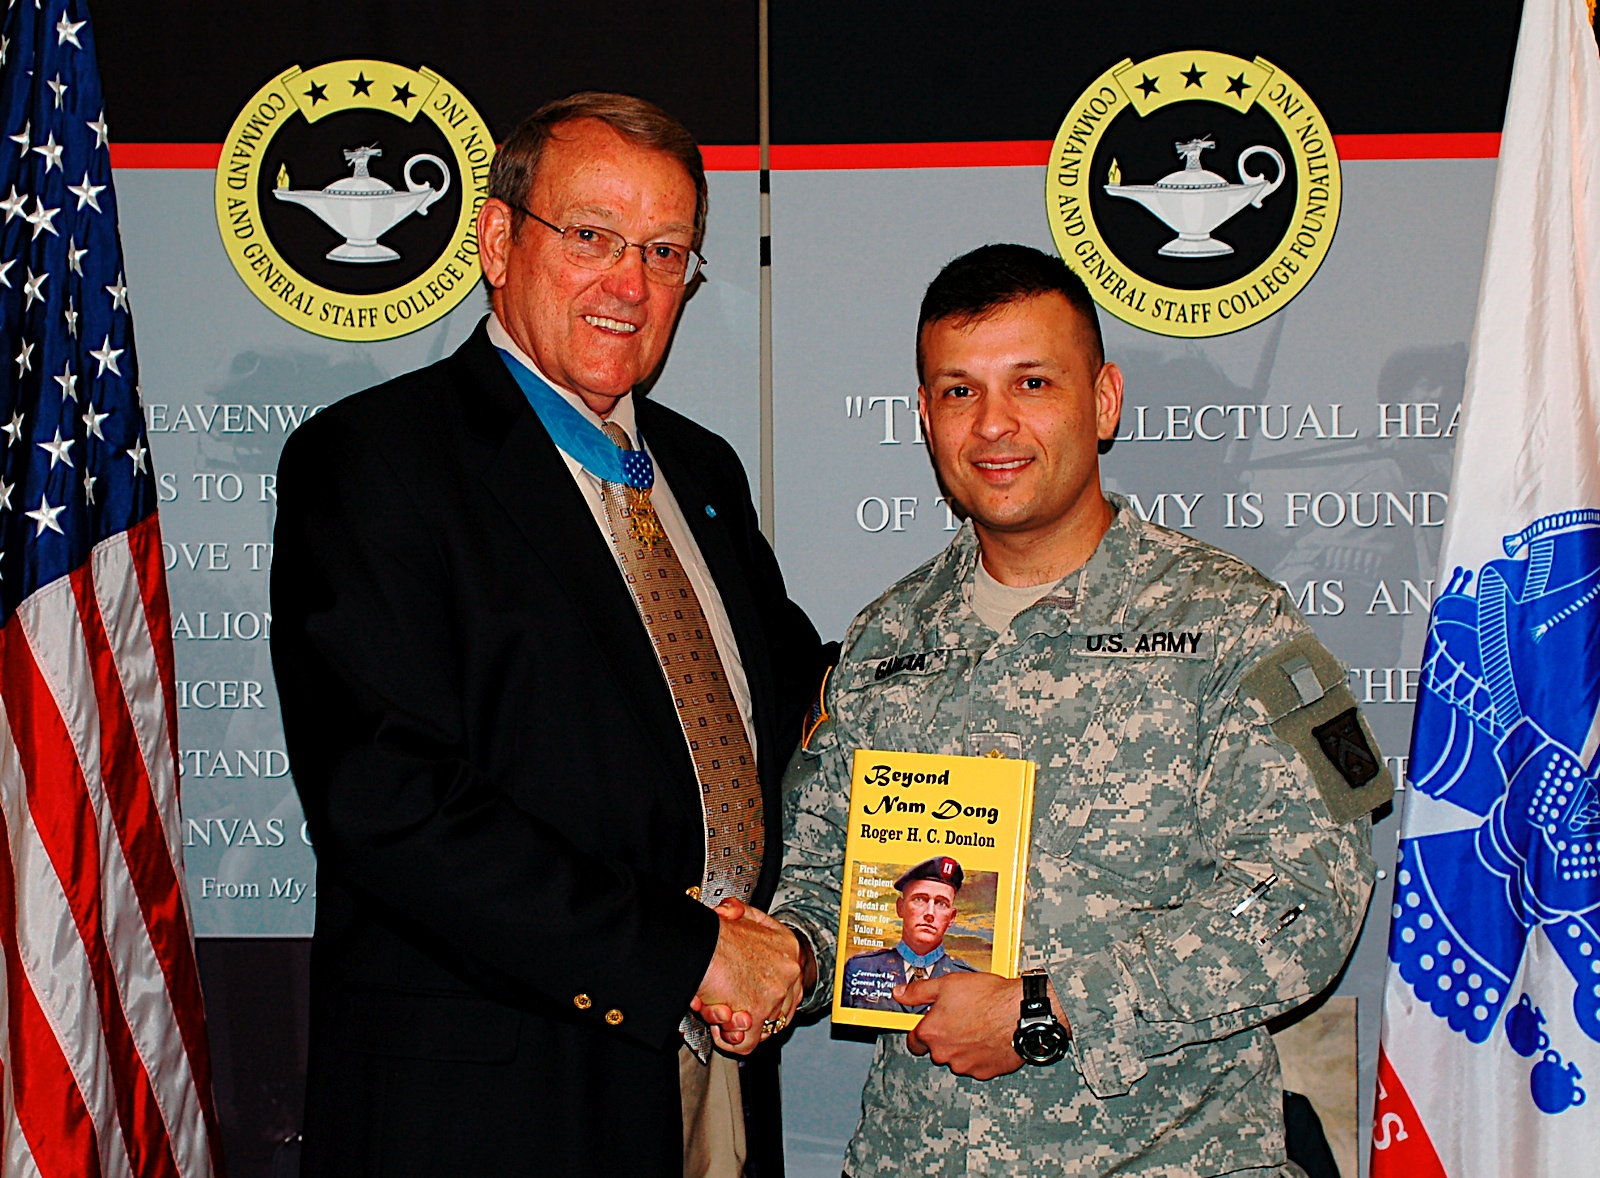 Col. (Ret.) Roger Donlon poses with a CGSOC student after autographing a copy of his book Beyond Nam Dong during a book signing in the CGSC Foundation gift shop in March 2009.